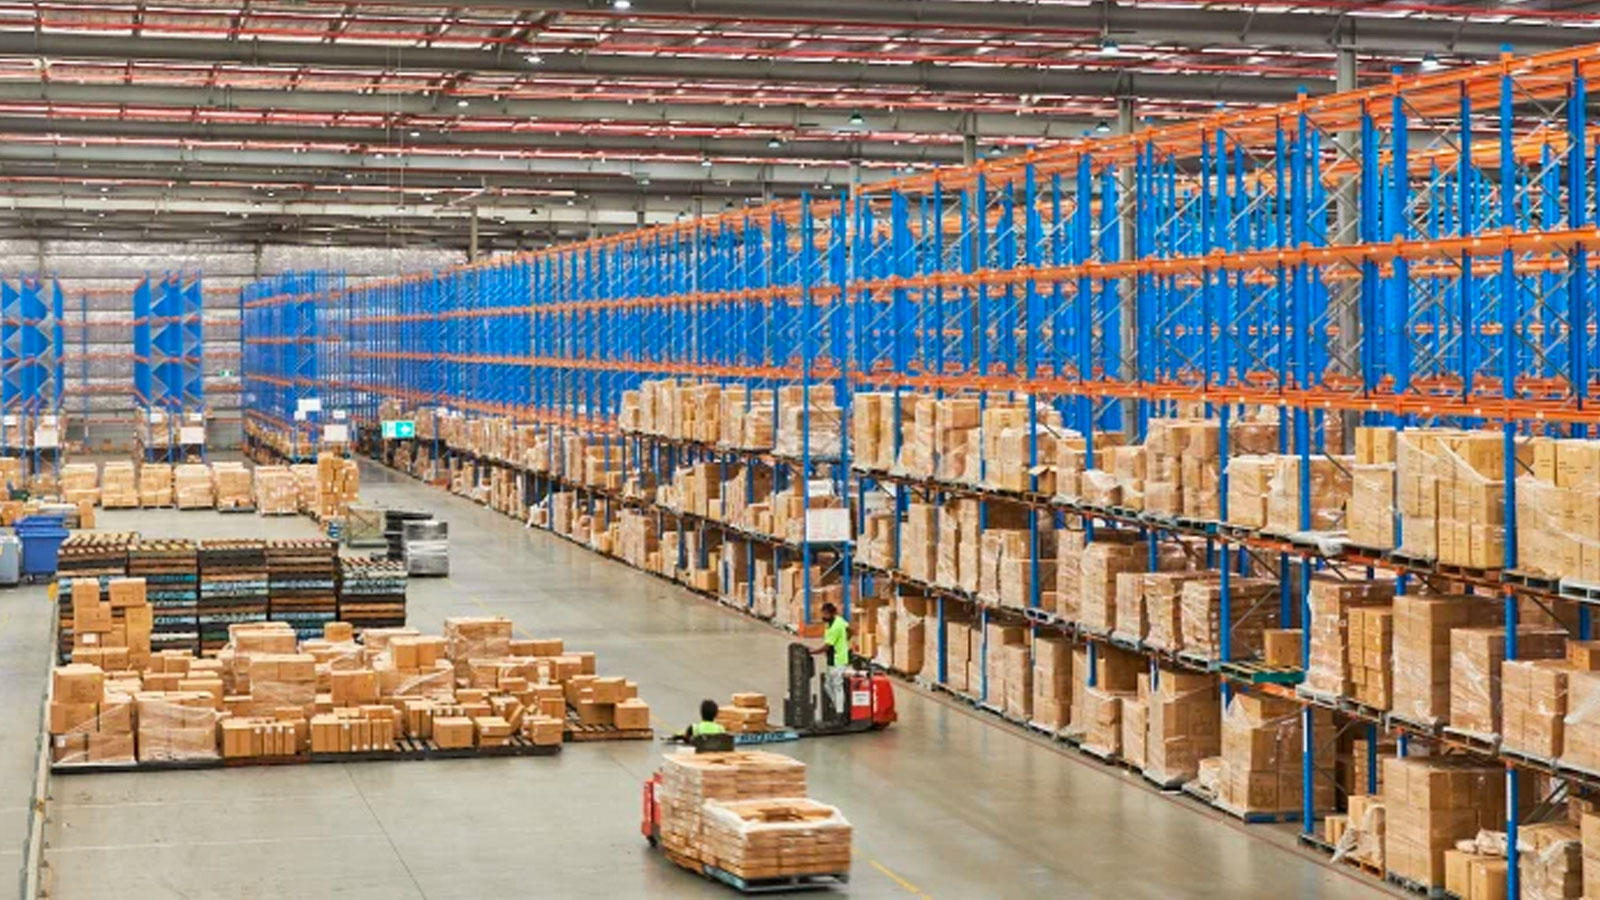 Best & Less warehouse nets record deal for AMP Capital, Swiss Re